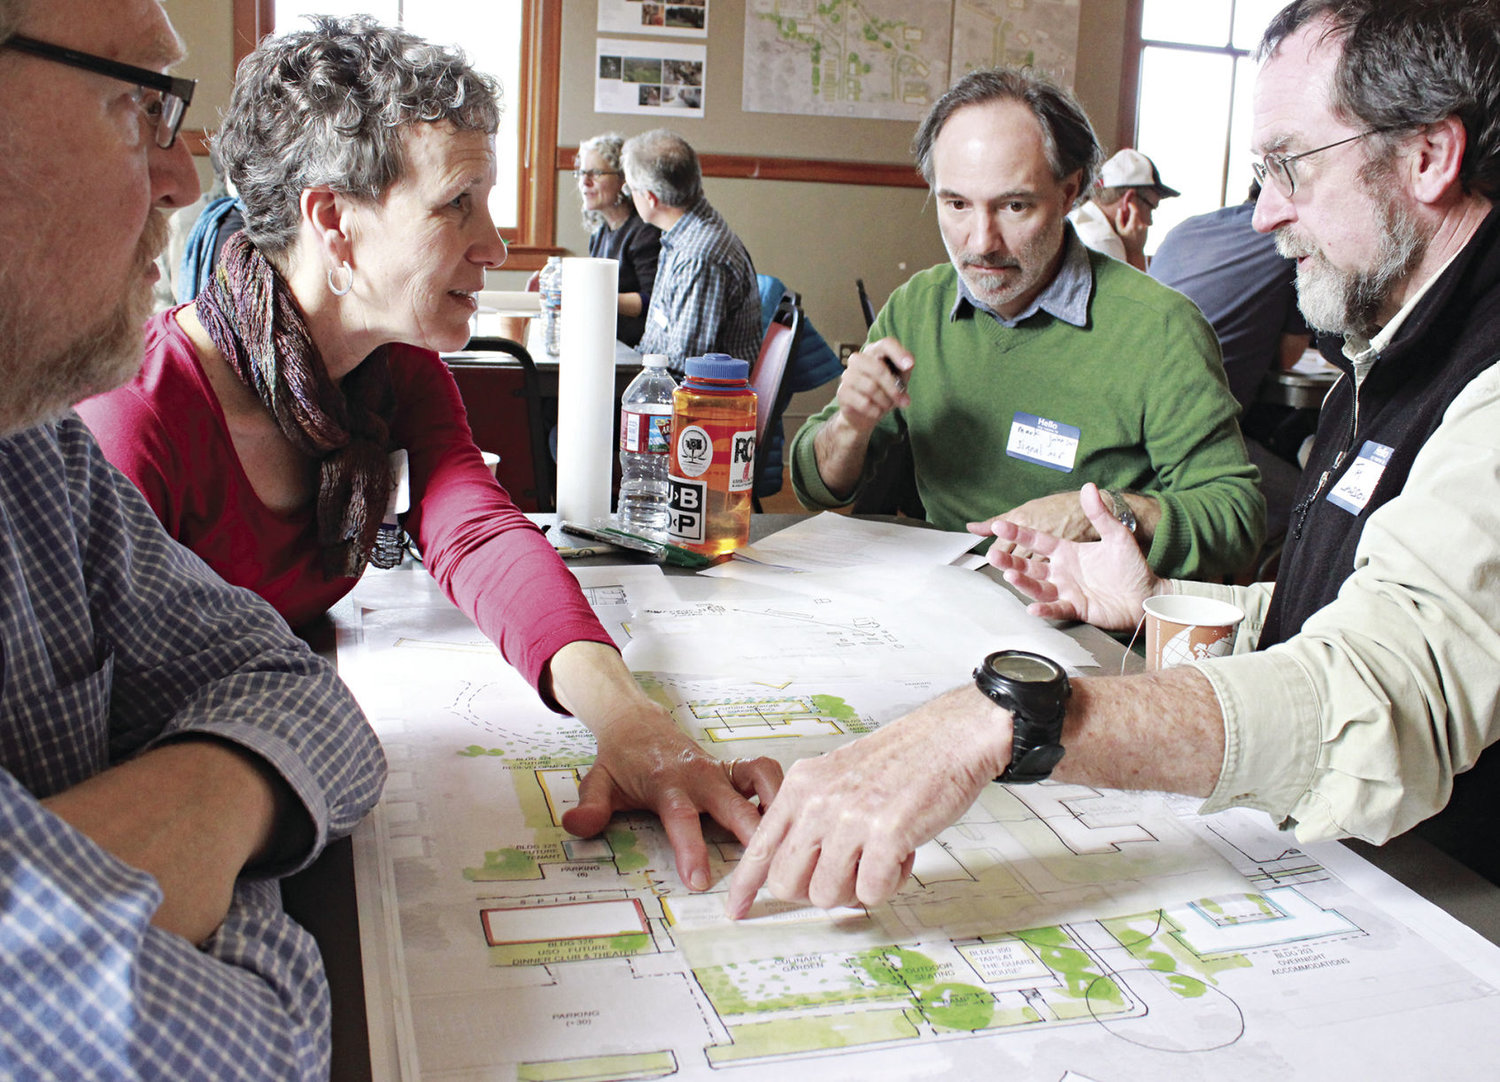 Plans for the Makers Square at Fort Worden State Park are now in progress, and are inspected by (from left) consultant Kris Tucker, architect Mark Johnson and Tim Lawson of the woodworking school. Photo by Charlie Bermant